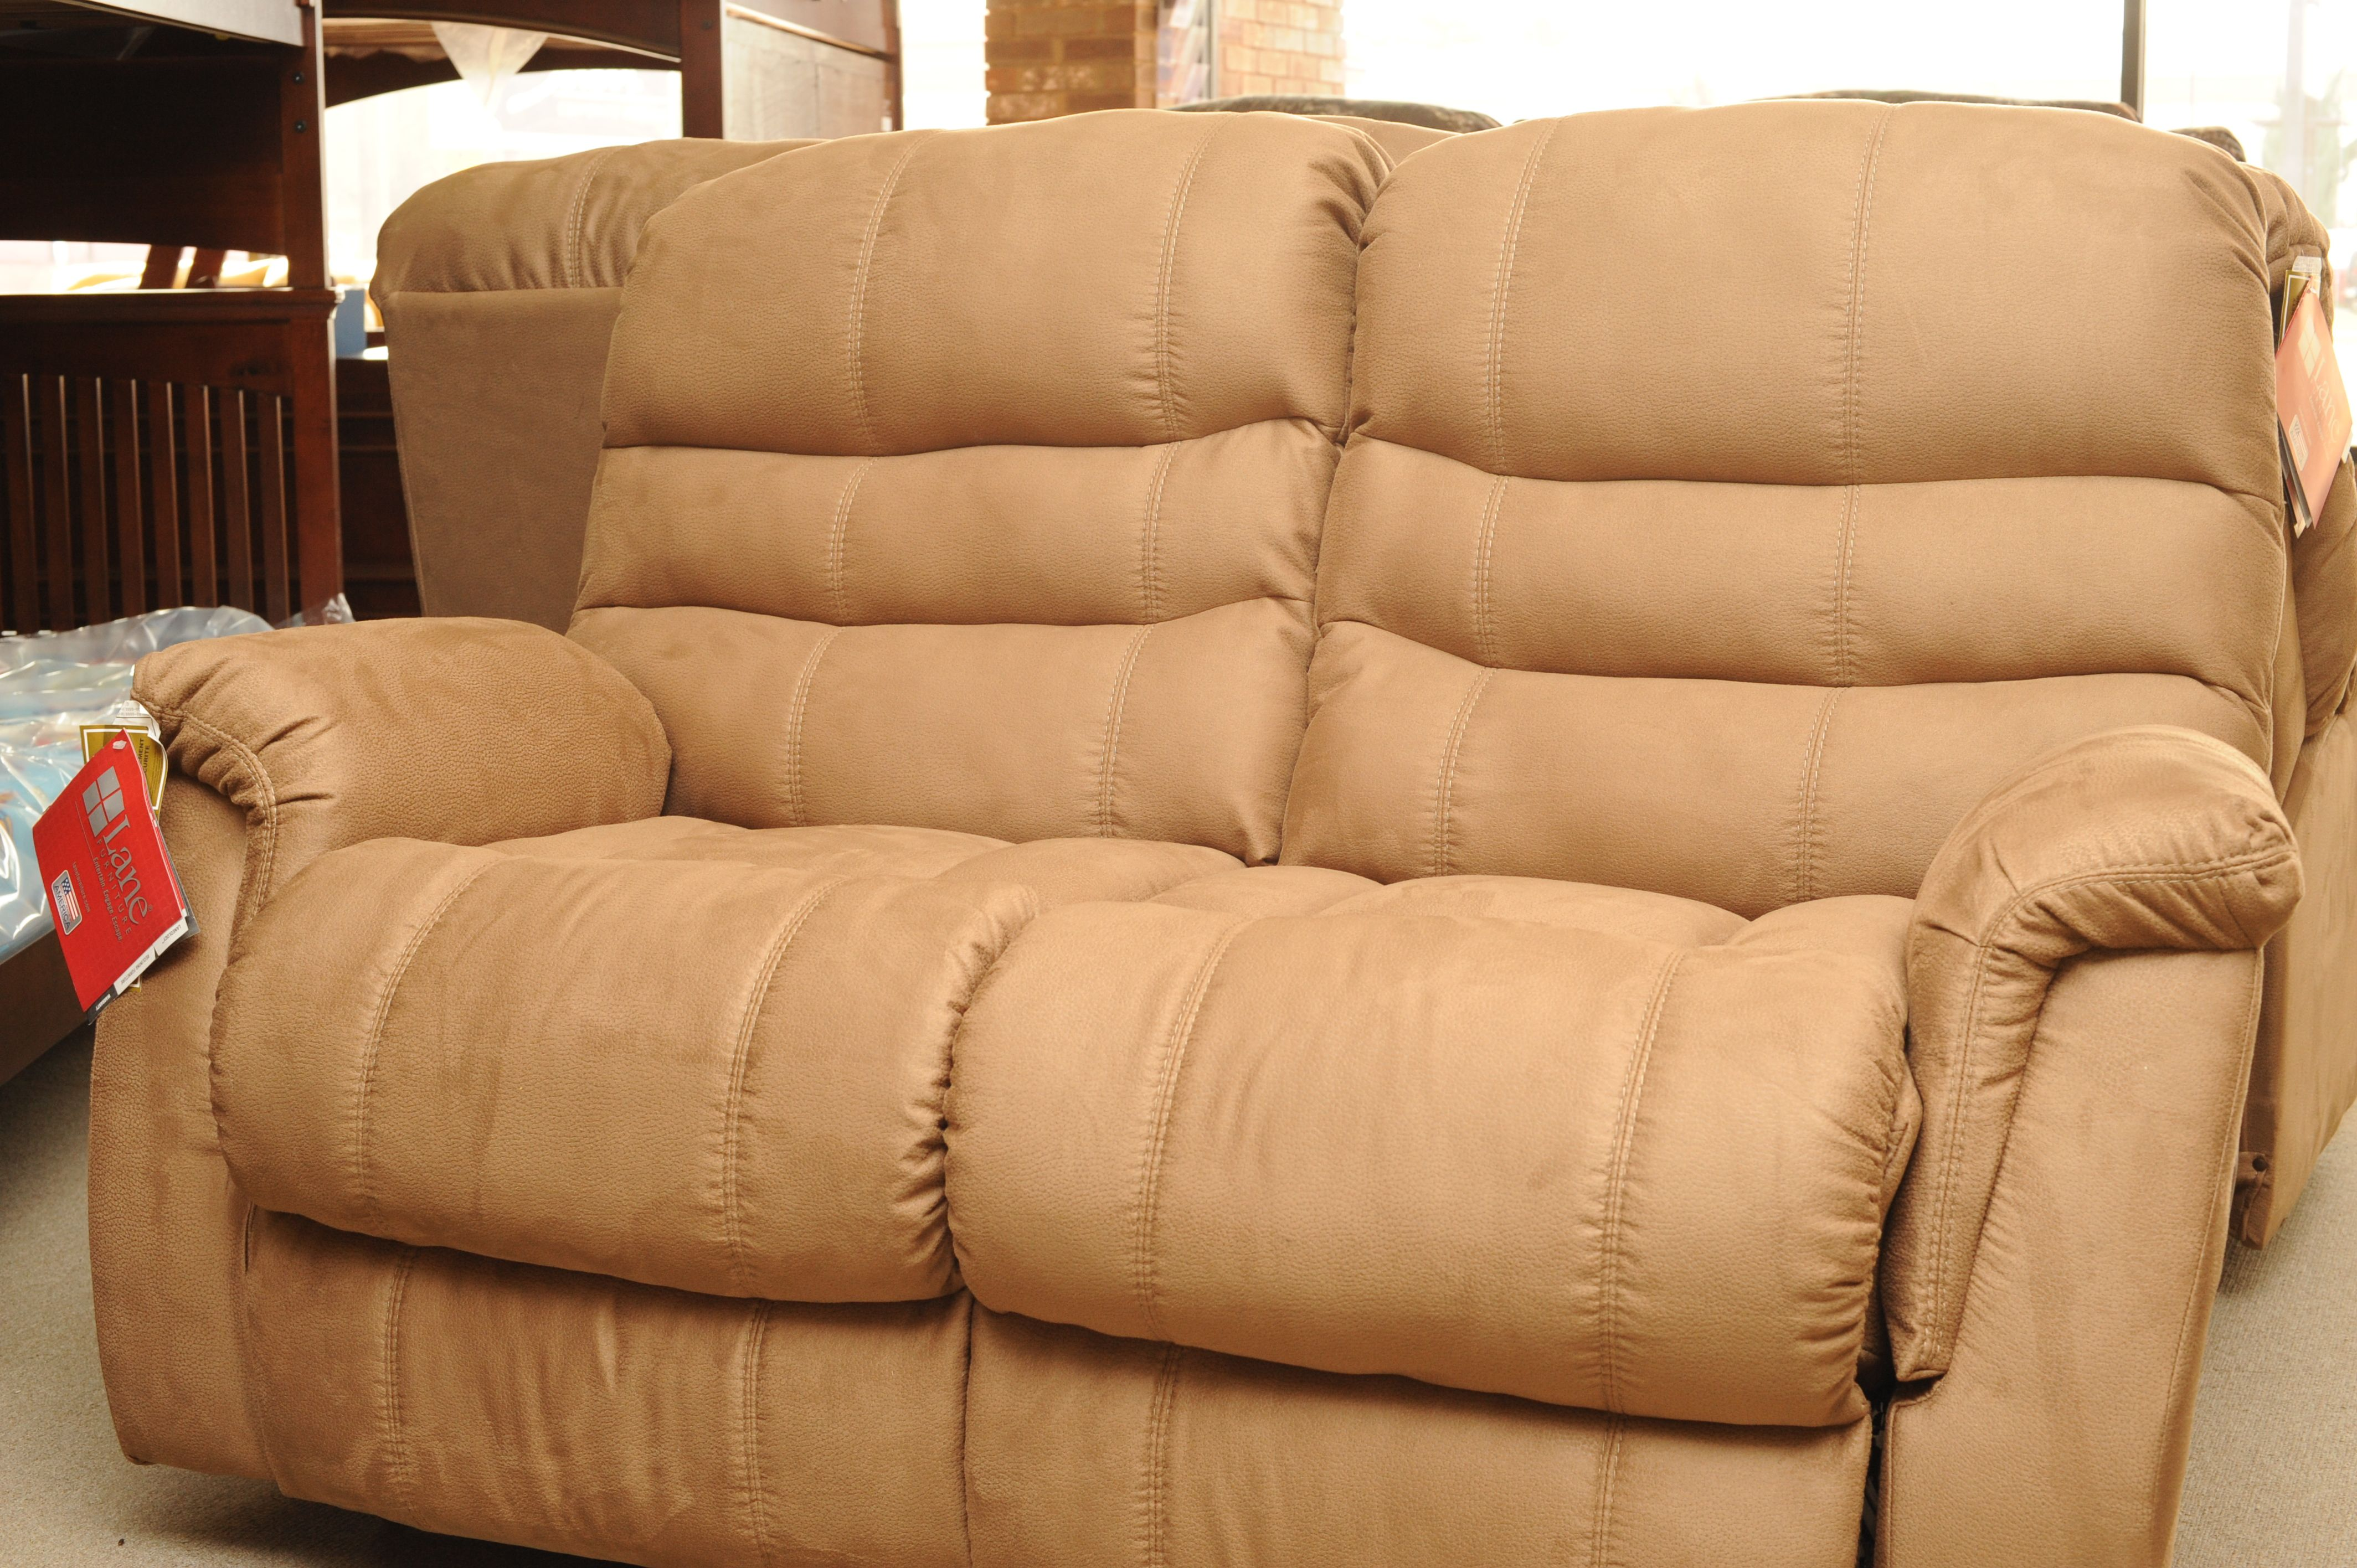 Fabulous Microfiber Faux Suede Reclining Loveseat By Lane Home Cjindustries Chair Design For Home Cjindustriesco